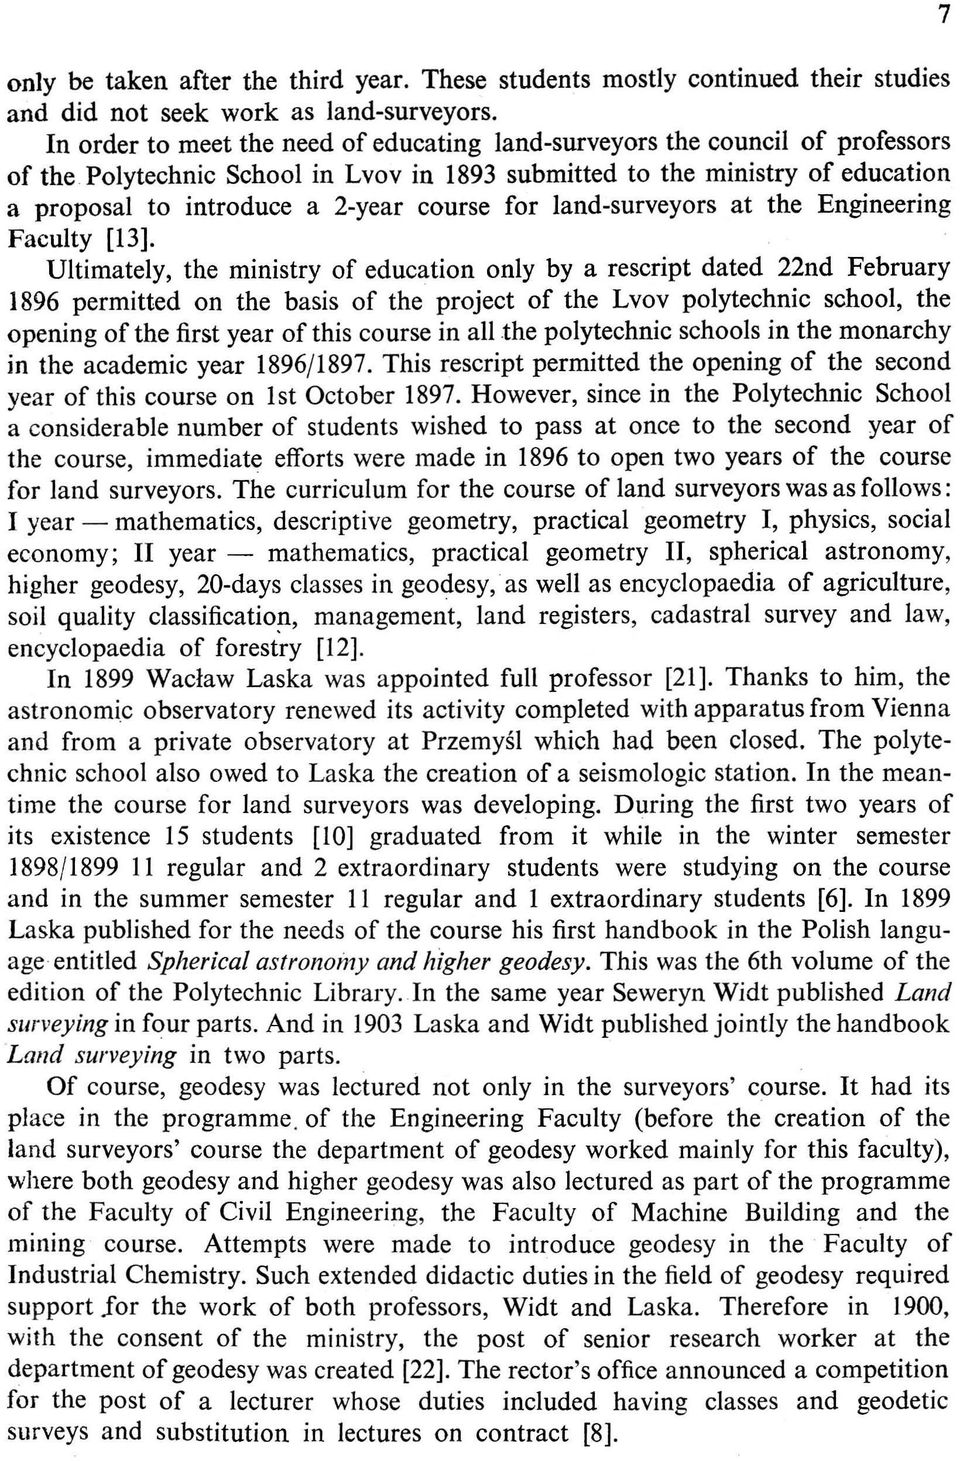 Polytechnic School in Lvov in 1893 submitted to the ministry of education a proposal to introduce a 2-year course for land-surveyors at the Engineering Faculty [13].